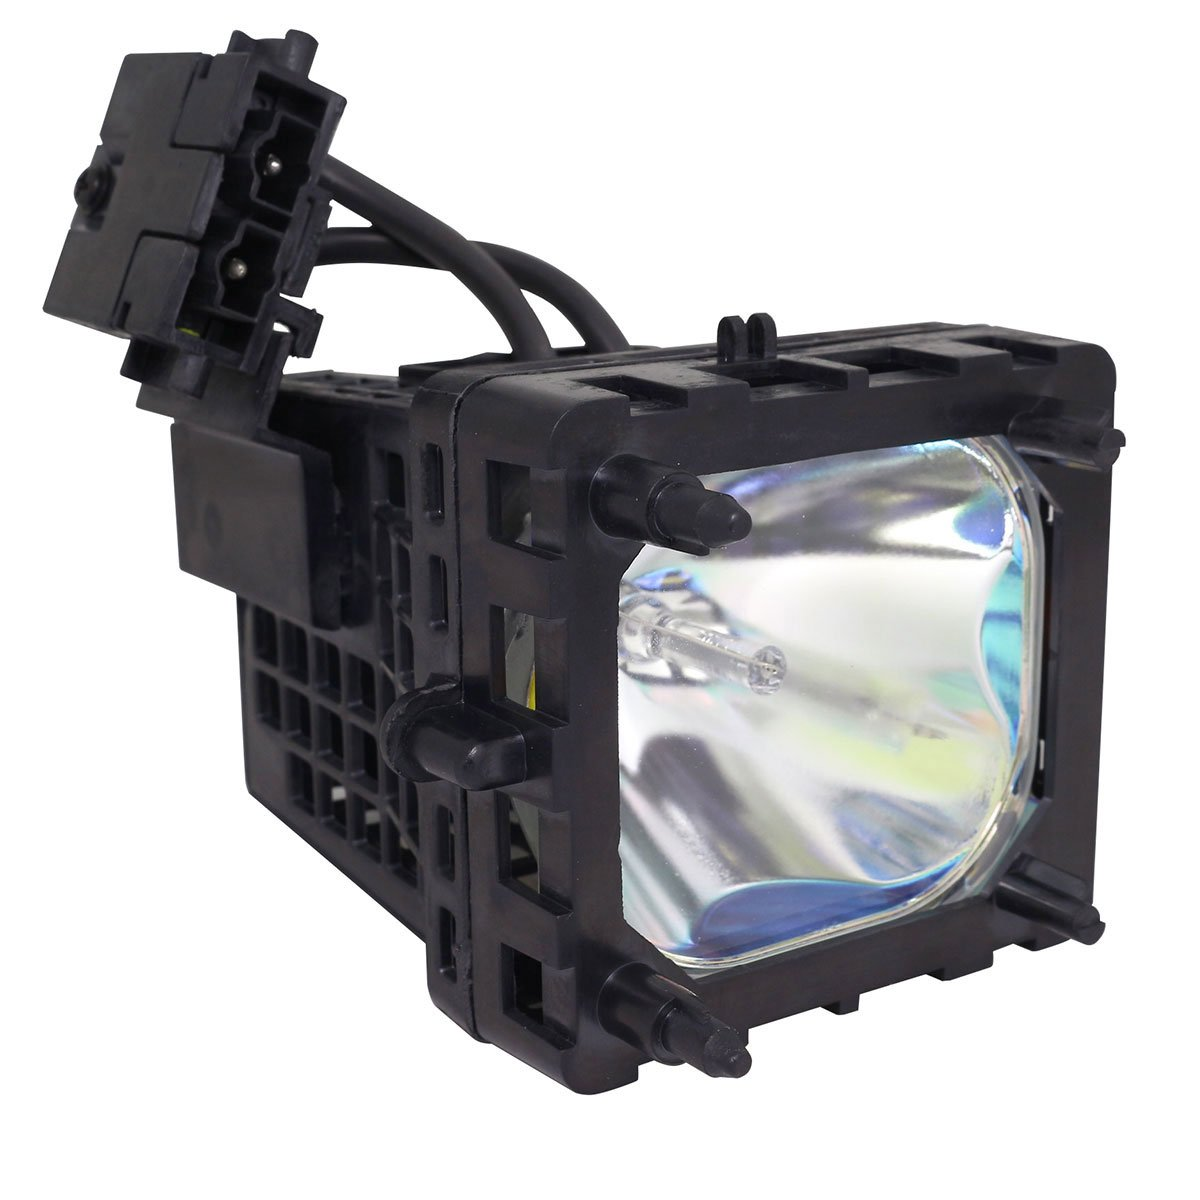 Original Philips Replacement TV Lamp with Housing for Sony XL-5200/F-9308-860-0